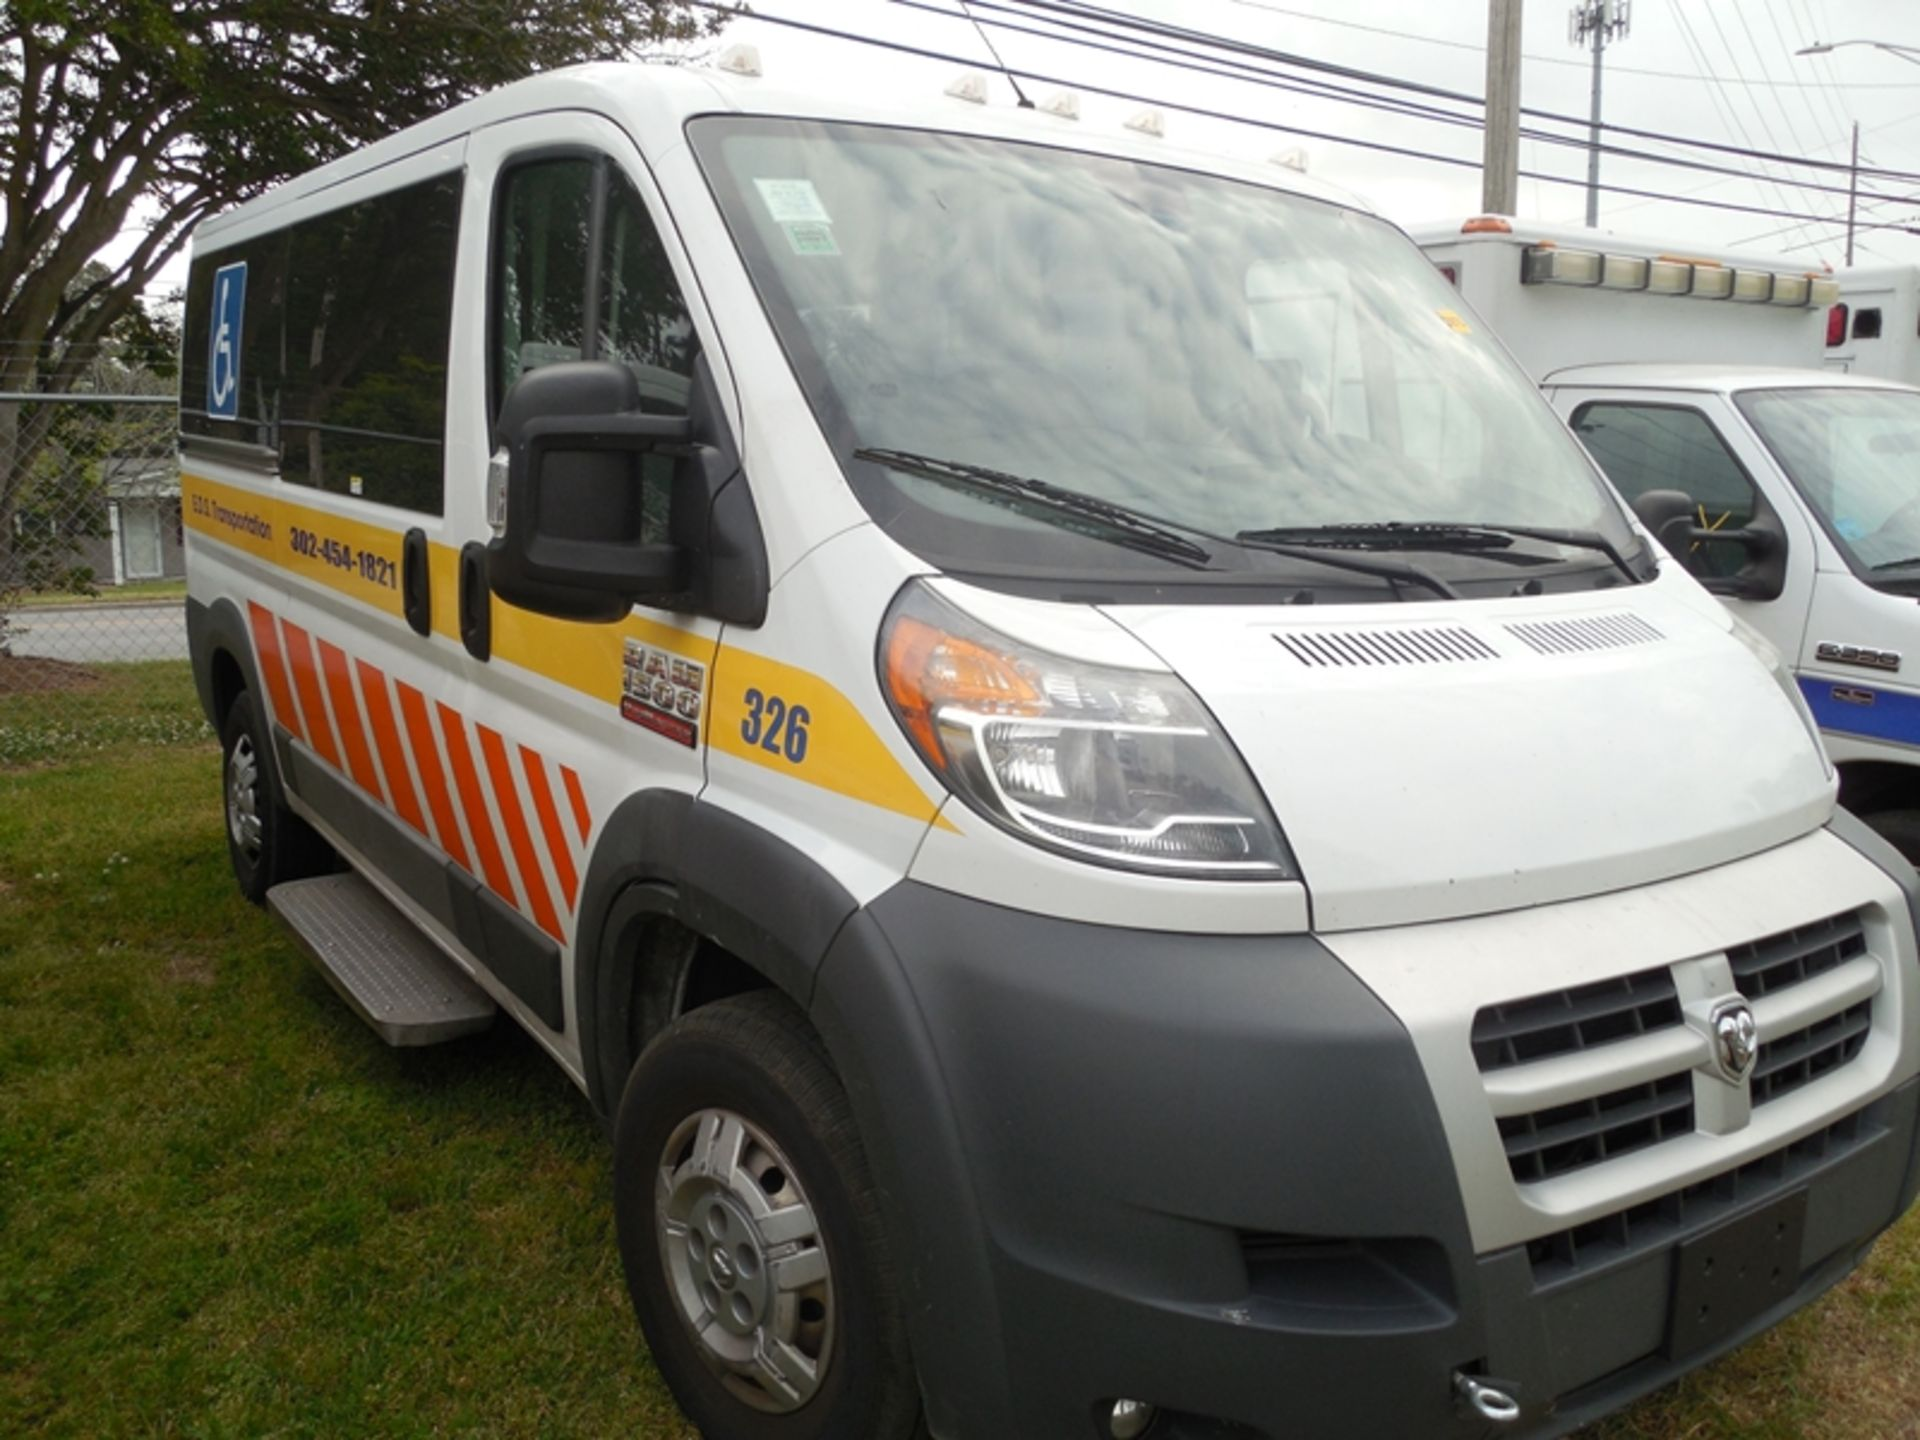 2014 Dodge Promaster wheel chair van